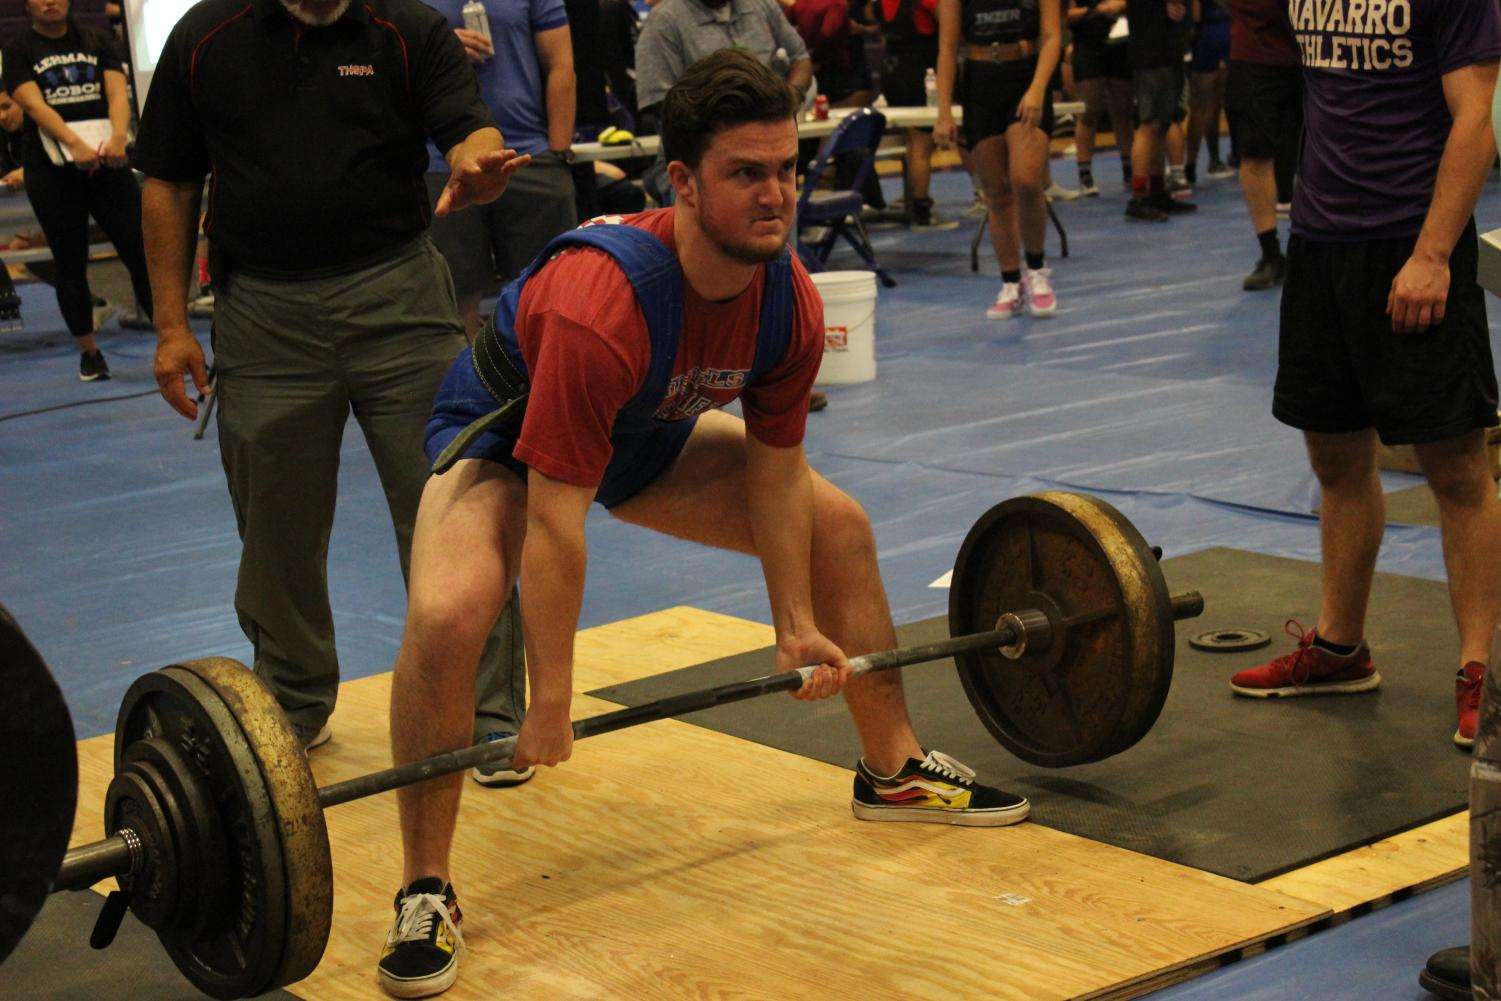 Nic+Williams%2C+12%2C+four-year+lifter%2C+pulling+a+personal+record.